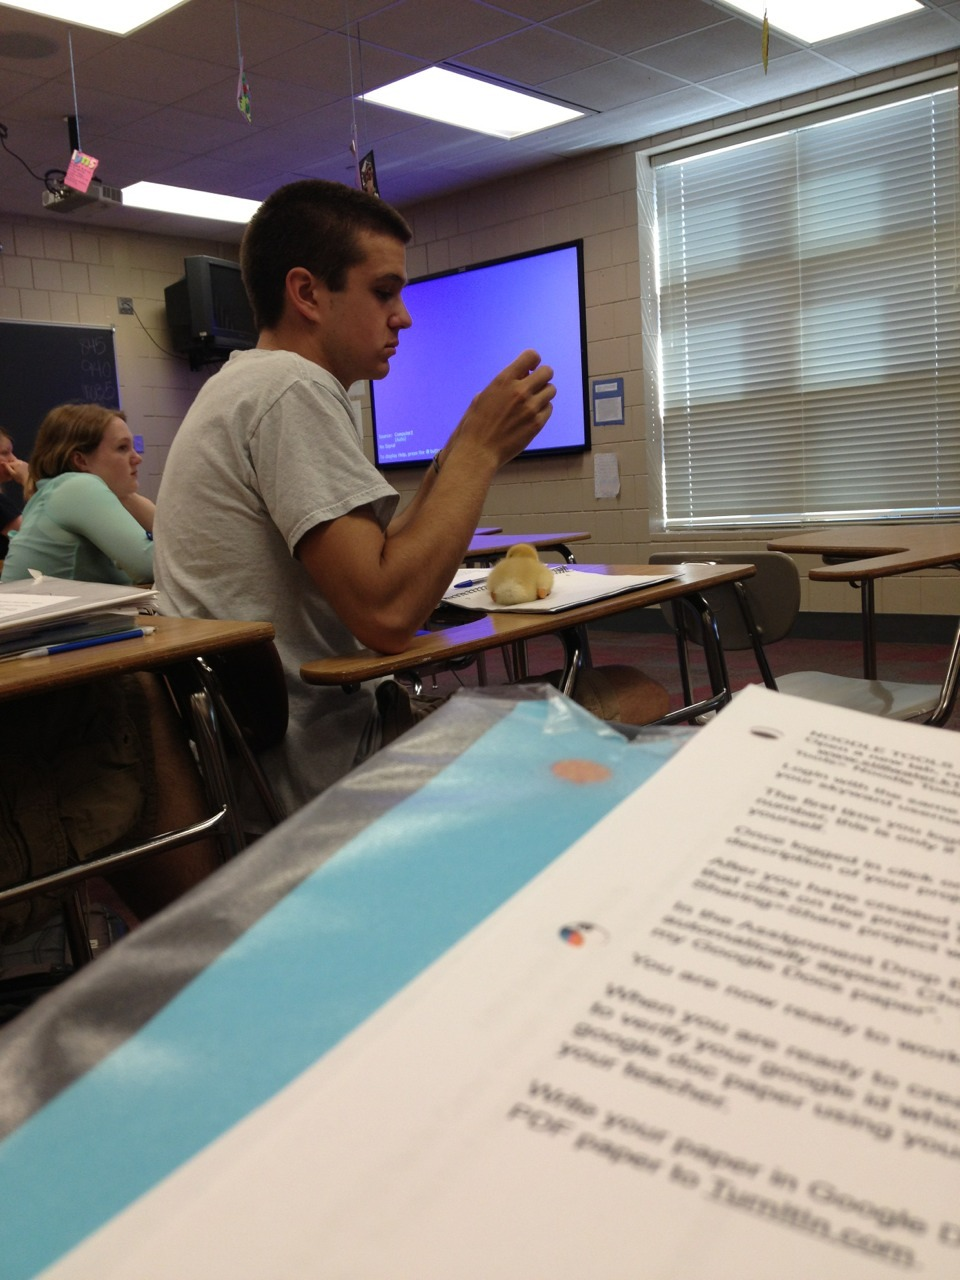 teenytigress:  SO THIS GUY IN MY ENGLISH IS DOING A PROJECT FOR BIO WHERE HE GETS A DUCKLING TO IMPRINT ON HIM SO HE JUST CARRIES IT AROUND WITH HIM TO ALL OF HIS CLASSES AND I SWEAR THIS DUCK IS THE MOST WELL BEHAVED FUCKING POULTRY IVE EVER SEEN IT JUST SITS ON HIS DESK QUIETLY AND SOMETIMES HE PUTS IT IN HIS POCKET AND IT JUST SLEEPS LIKE WOW YOU GO DUCKY  oh.  my.  god.